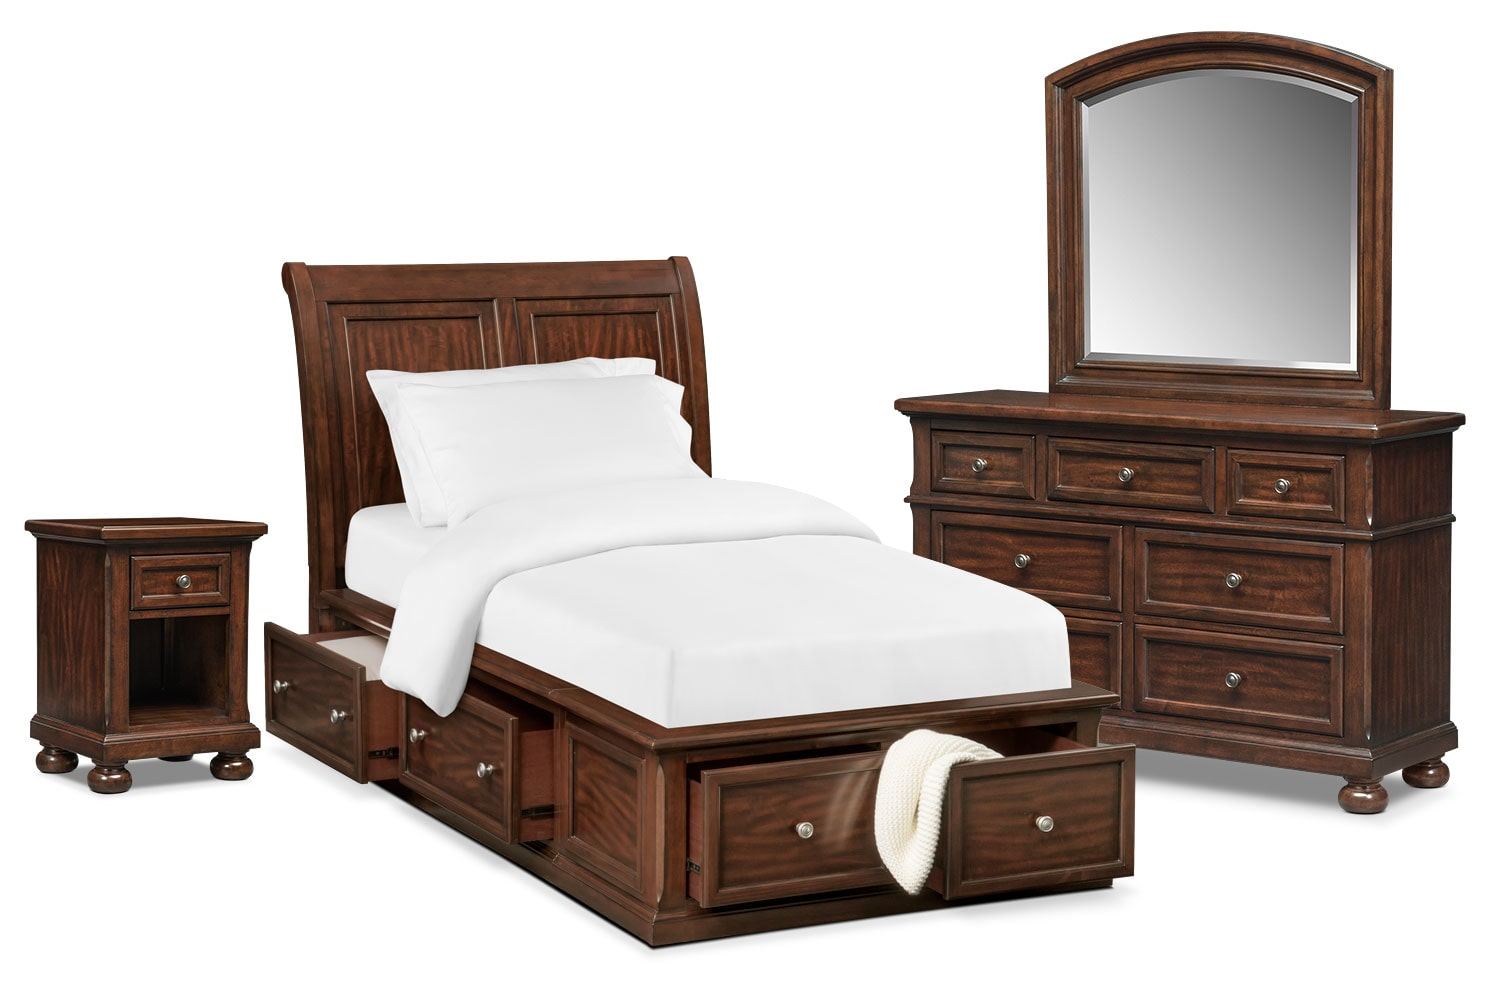 Bedroom Furniture - Hanover Youth 6-Piece Twin Sleigh Bedroom Set with Storage - Cherry